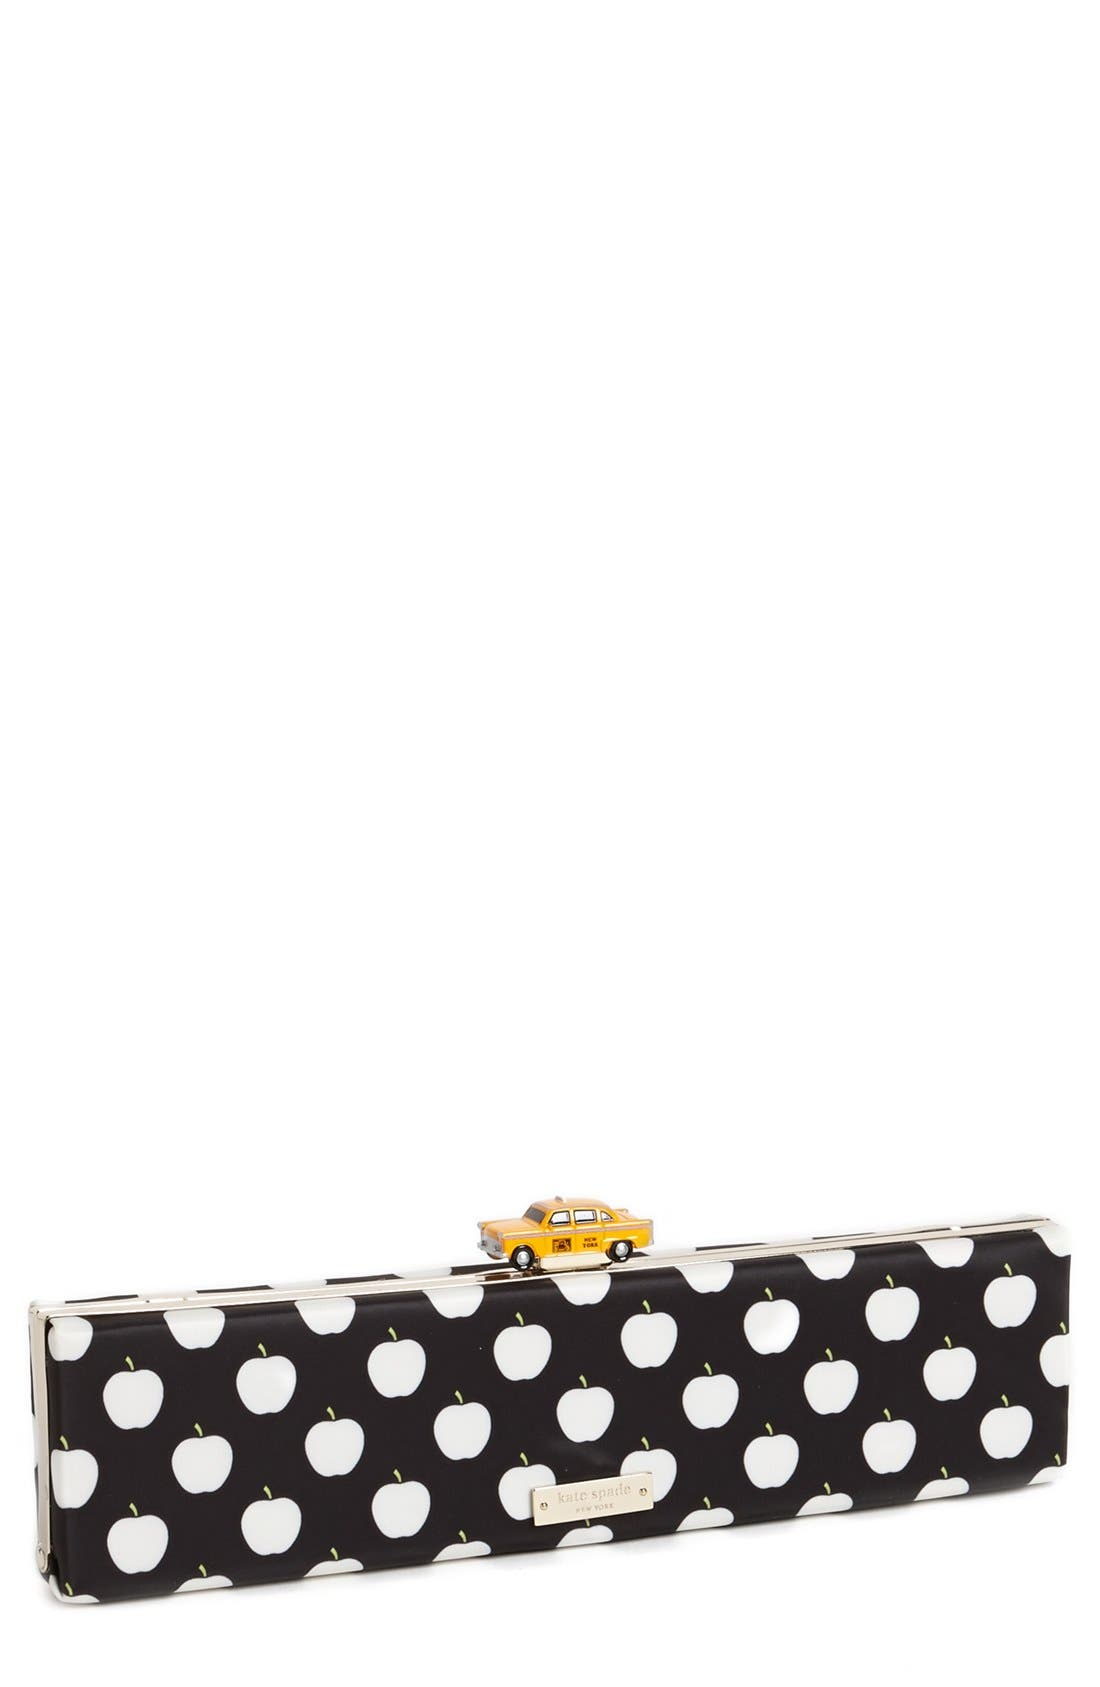 Alternate Image 1 Selected - kate spade new york 'far from the tree - off duty' clutch